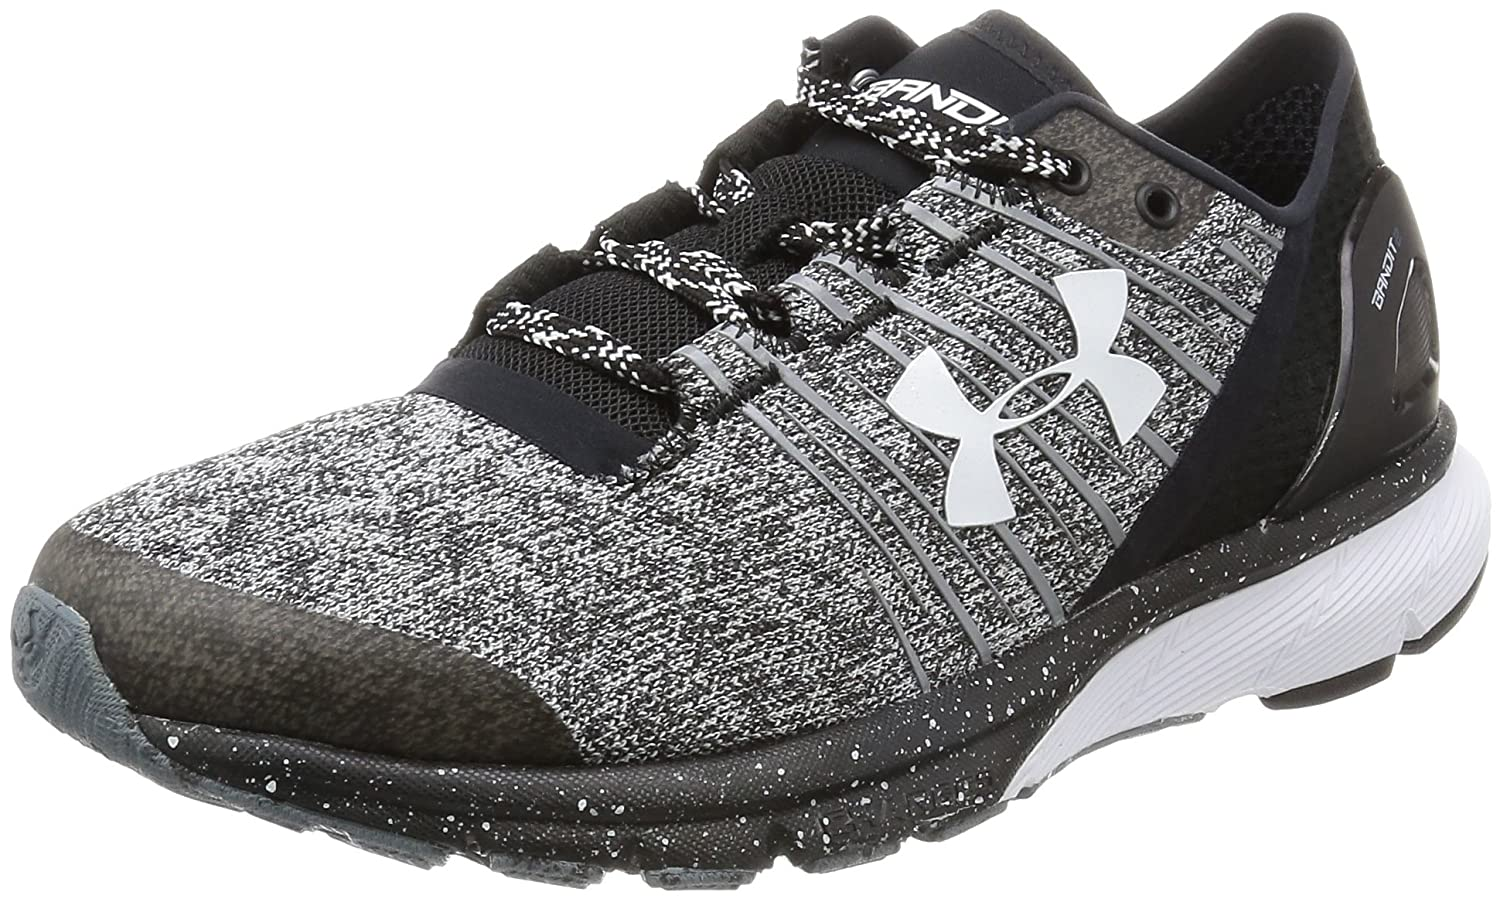 Under Armour Women's Charged Bandit 2 Cross-Country Running Shoe B018F1GXNI 6 B(M) US|Black/Black/White